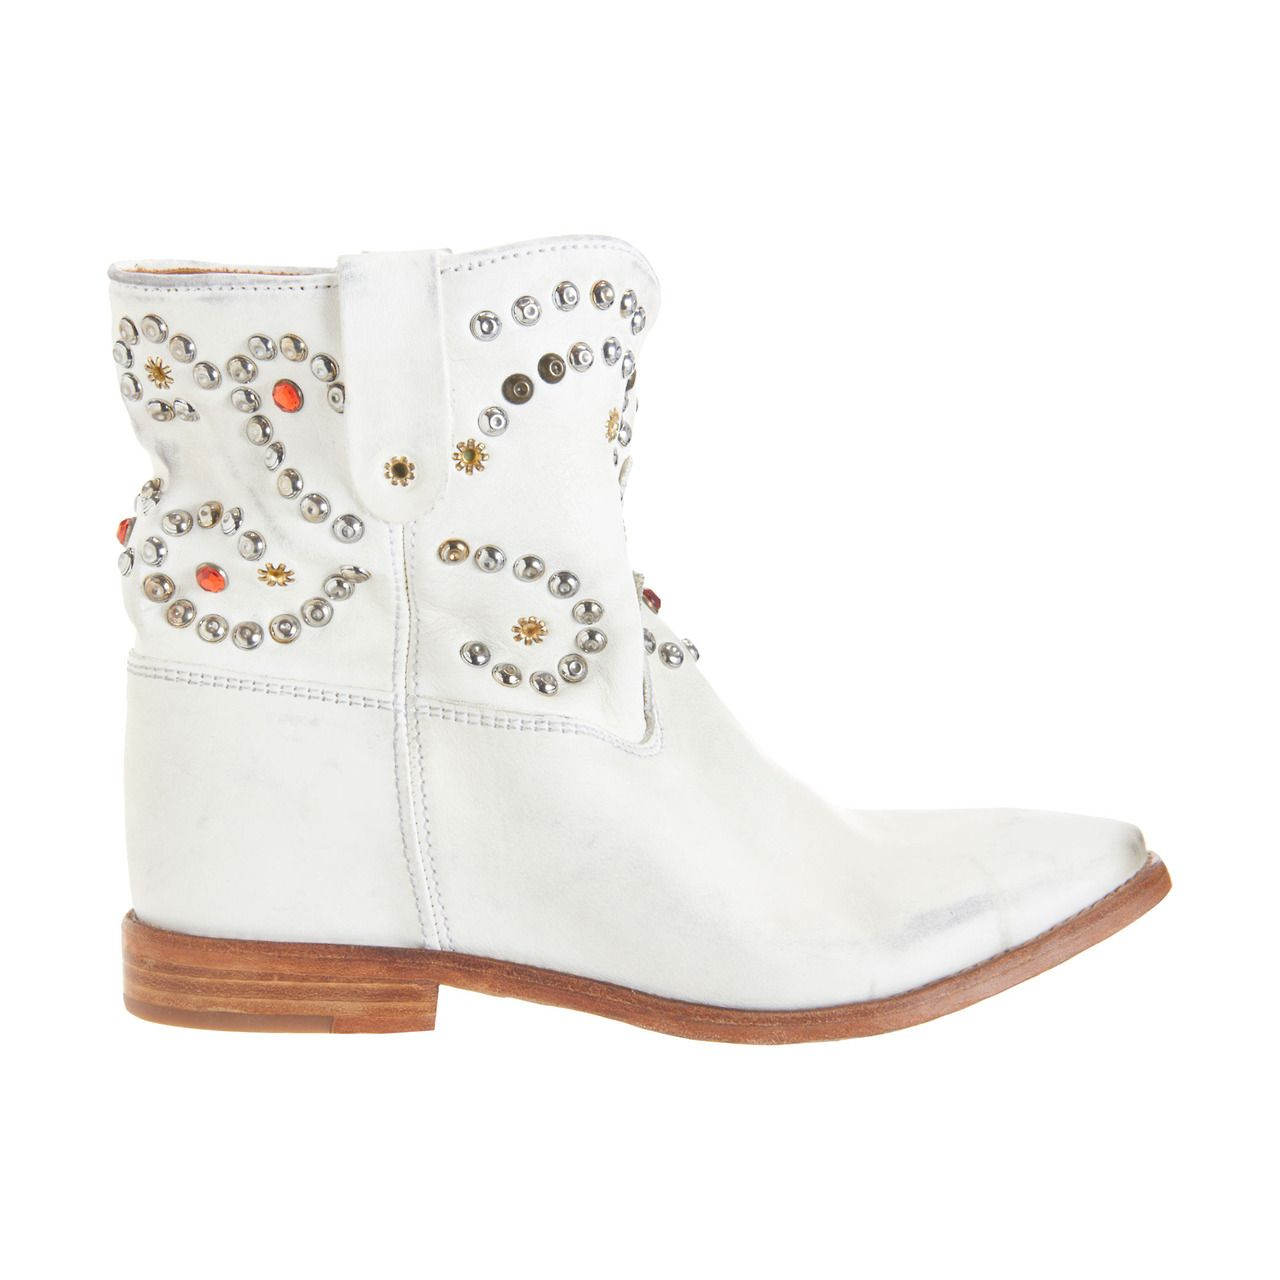 These Boots Were Made For Walking Courtesy Of Isabel Marant Isabel Marant Boots Boots Spring Break Accessories